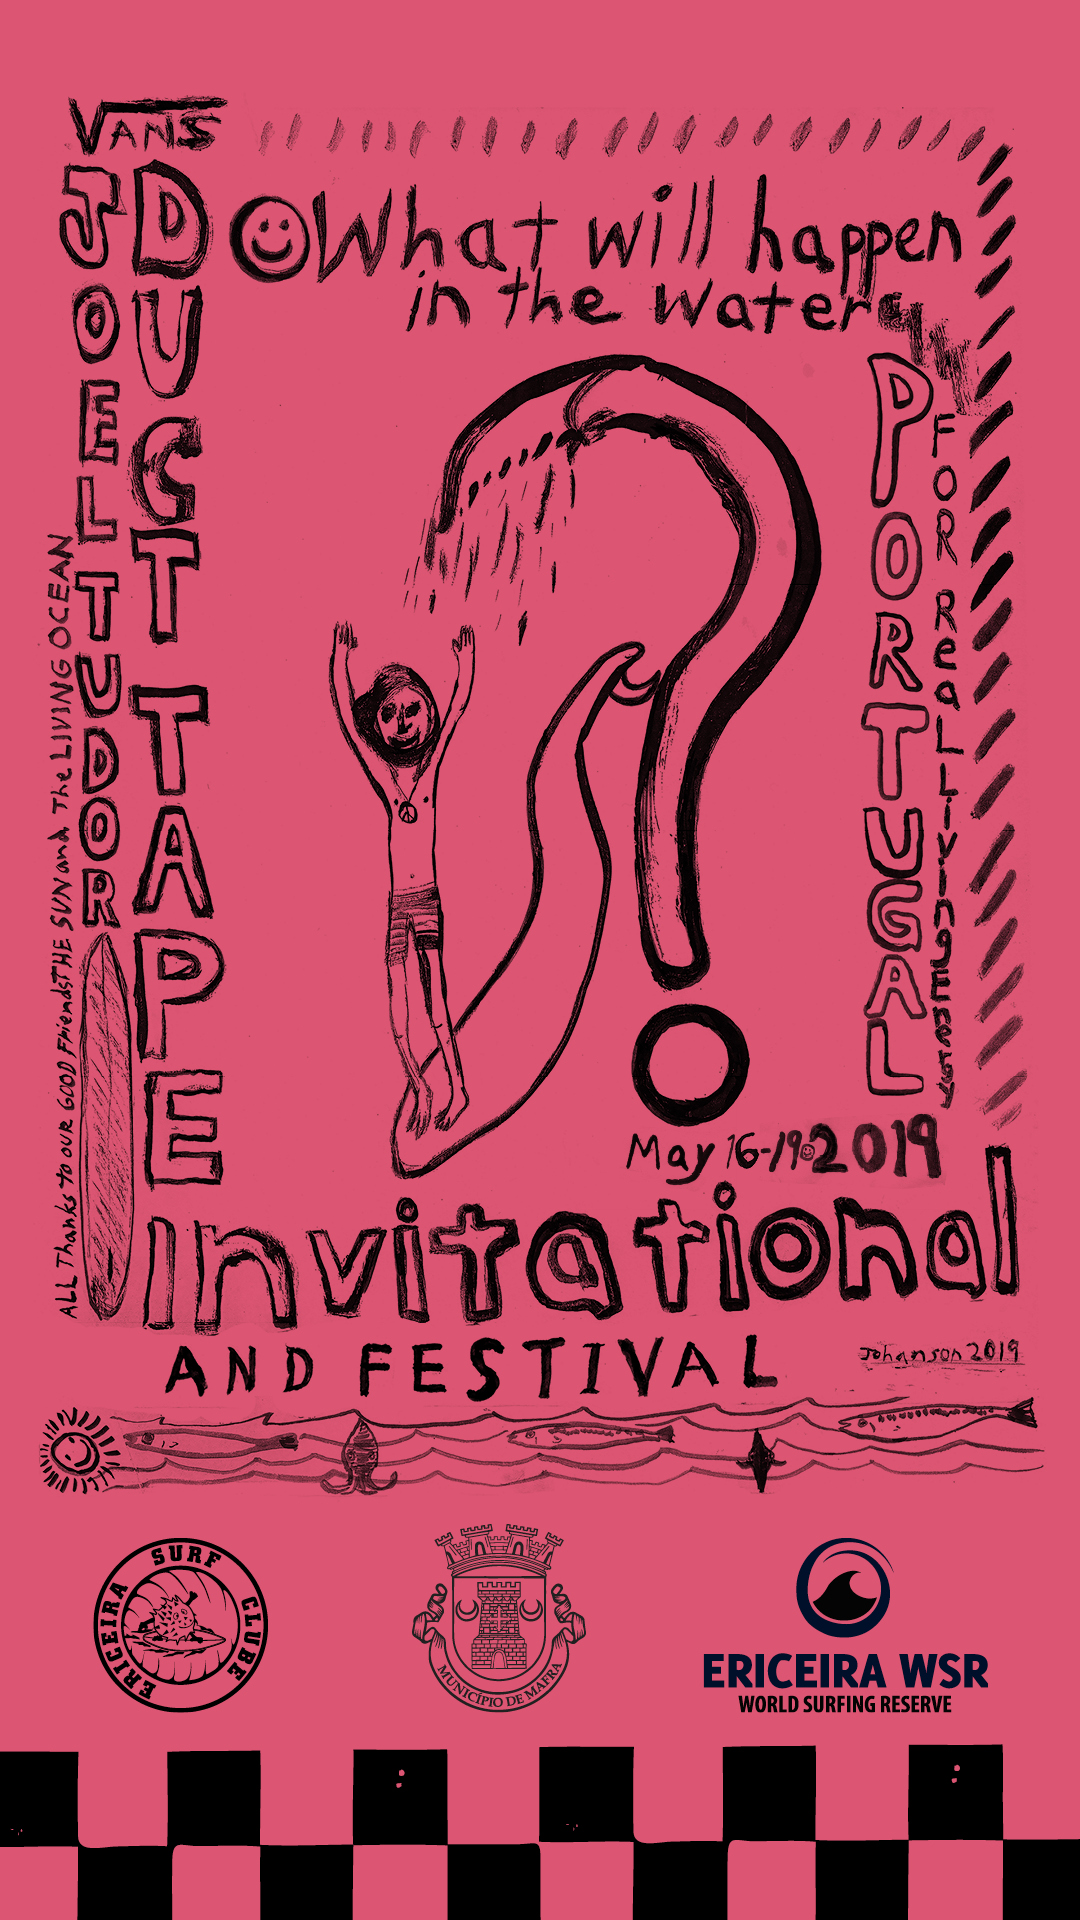 The Vans Joel Tudor Duct Tape Invitational and Surf Festival Travels to Ericeira, Portugal May 16-19 Joel Tudor's Iconic Longboard Contest Honours Creativity and Innovation in Surfing